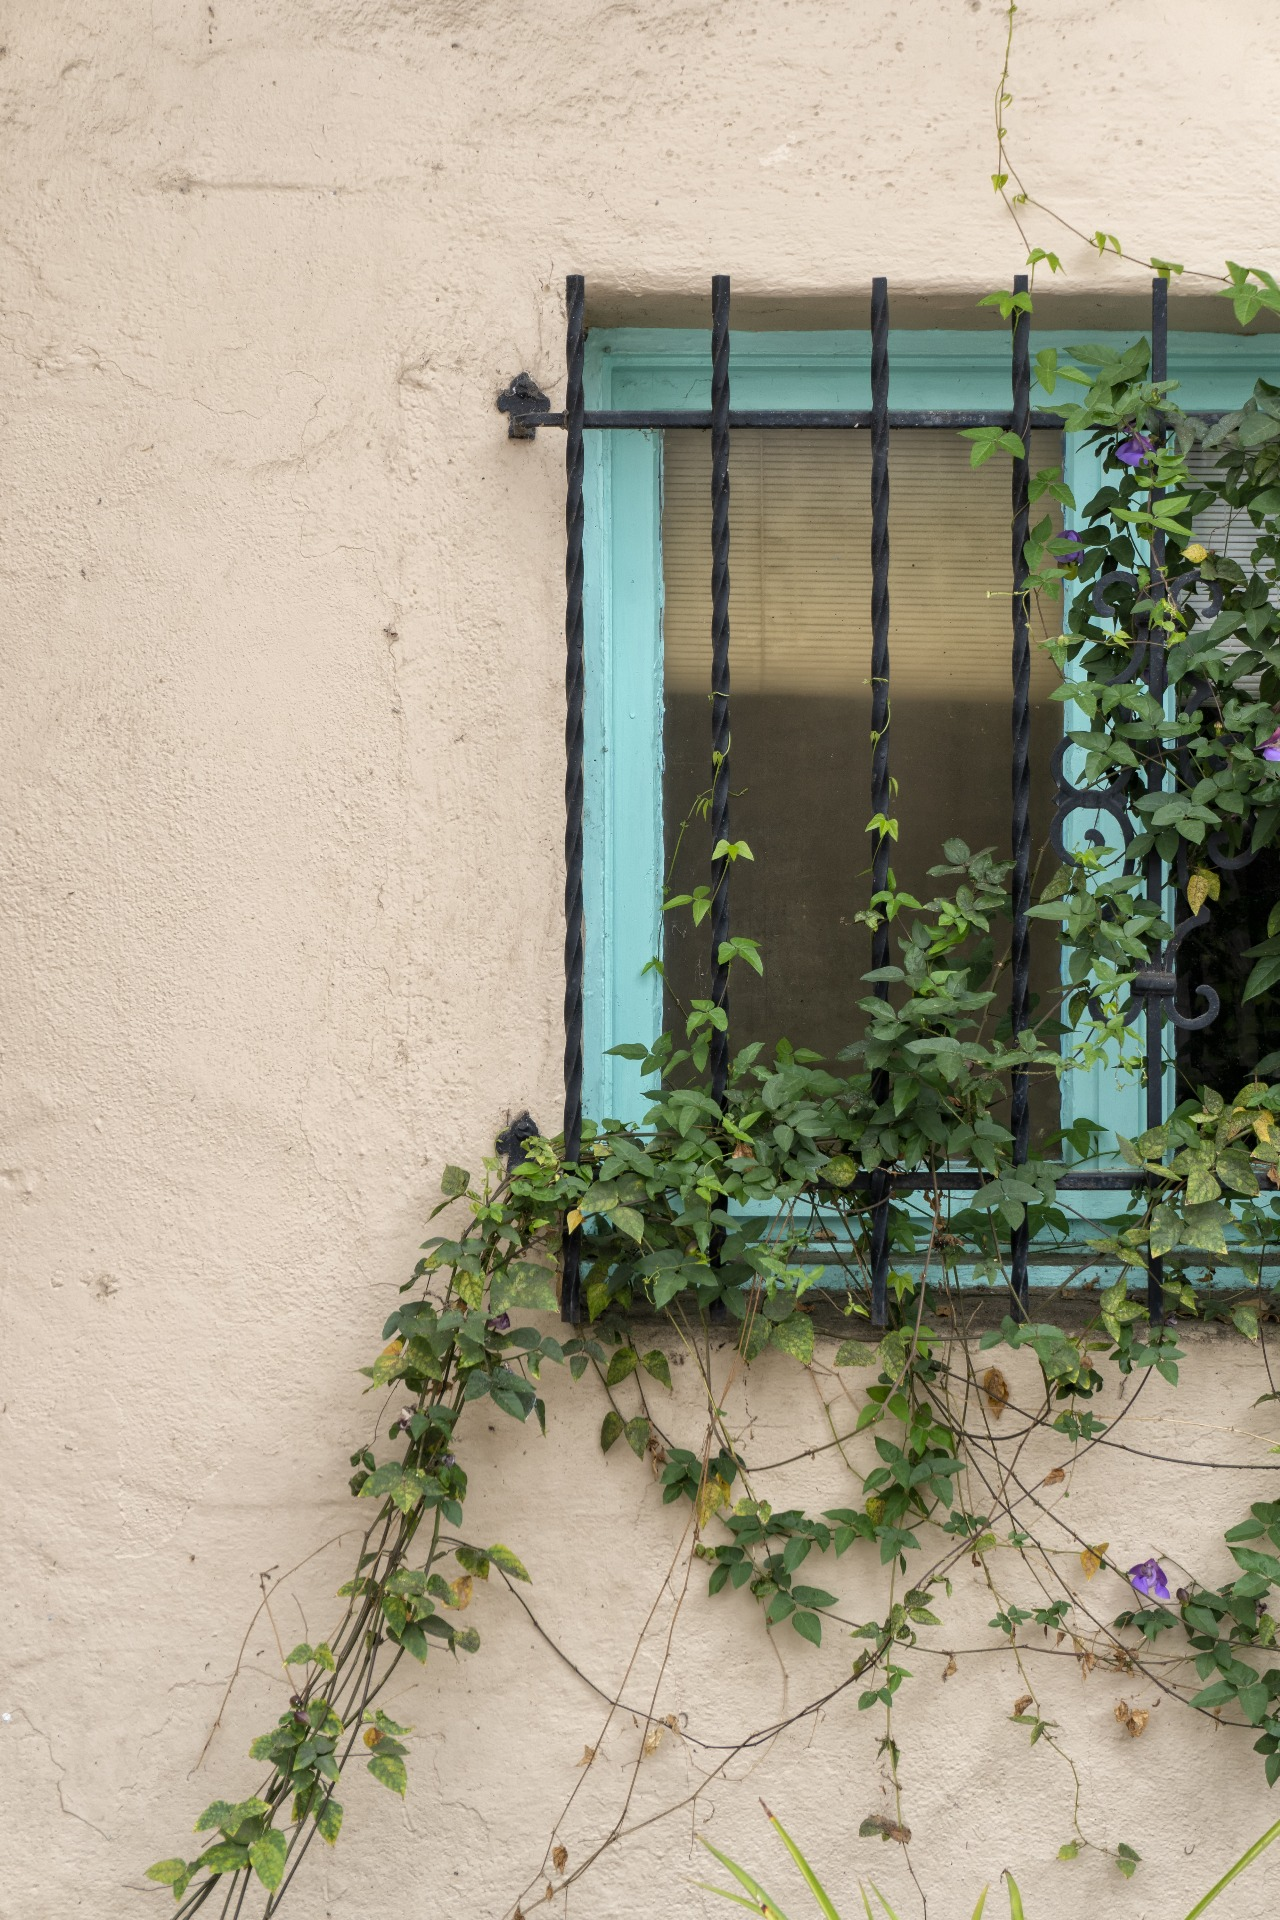 A window on a house, covered by black iron bars, with a green plant growing over the window and around the bars.